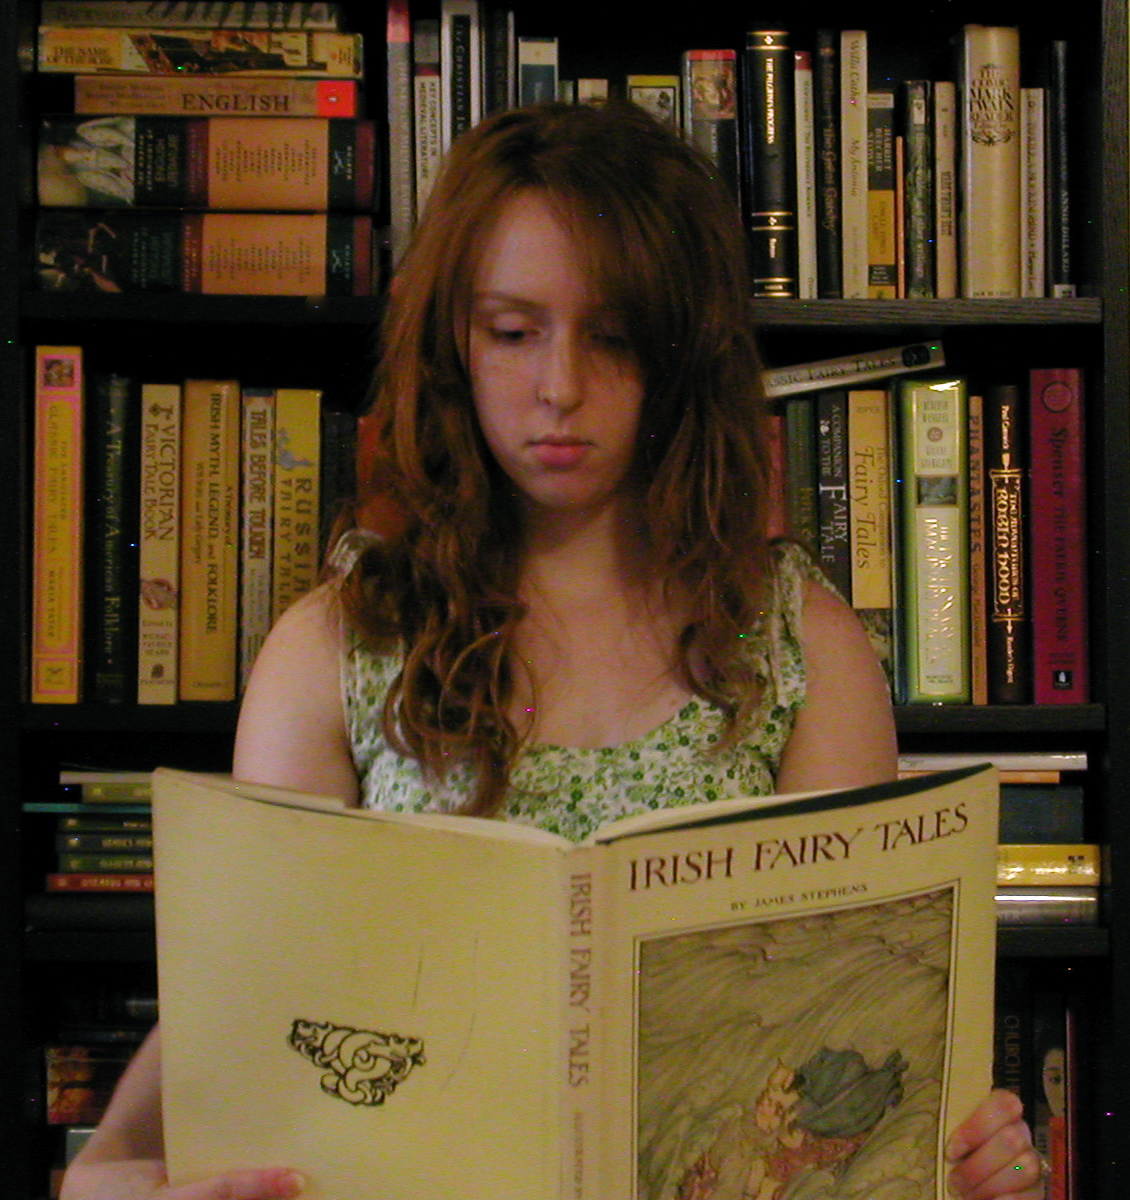 Jessica Gingerherring, The joys of the home library, 16. September 2008